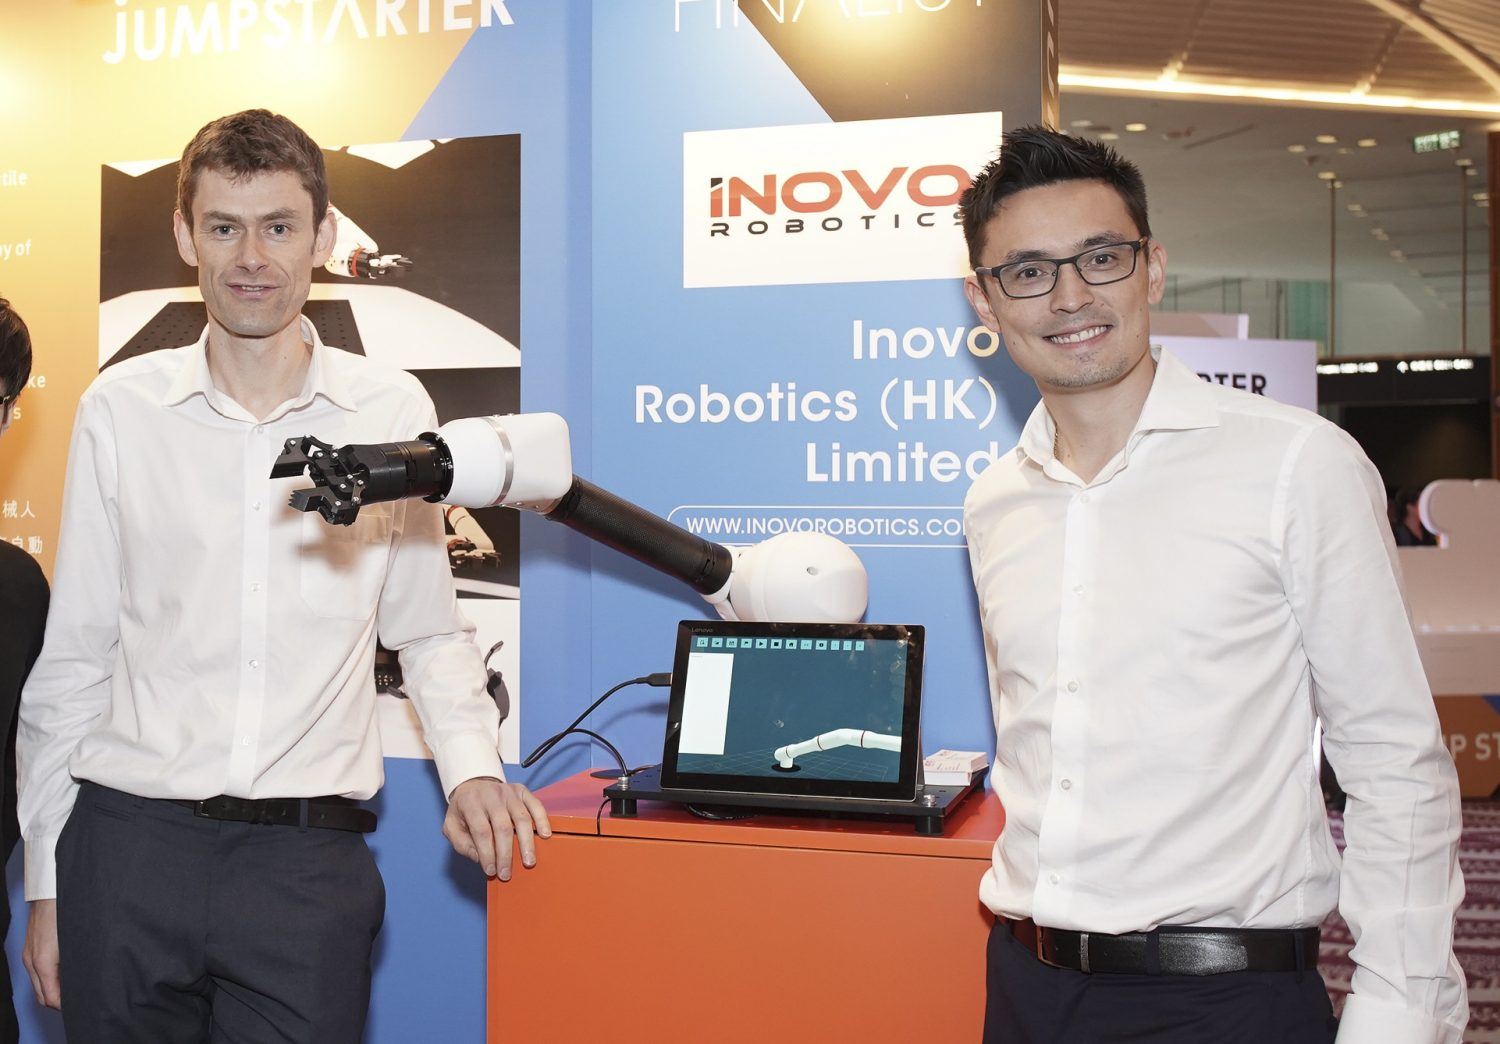 Inovo Robotics secures £1.5m investment from Williams F1 Team